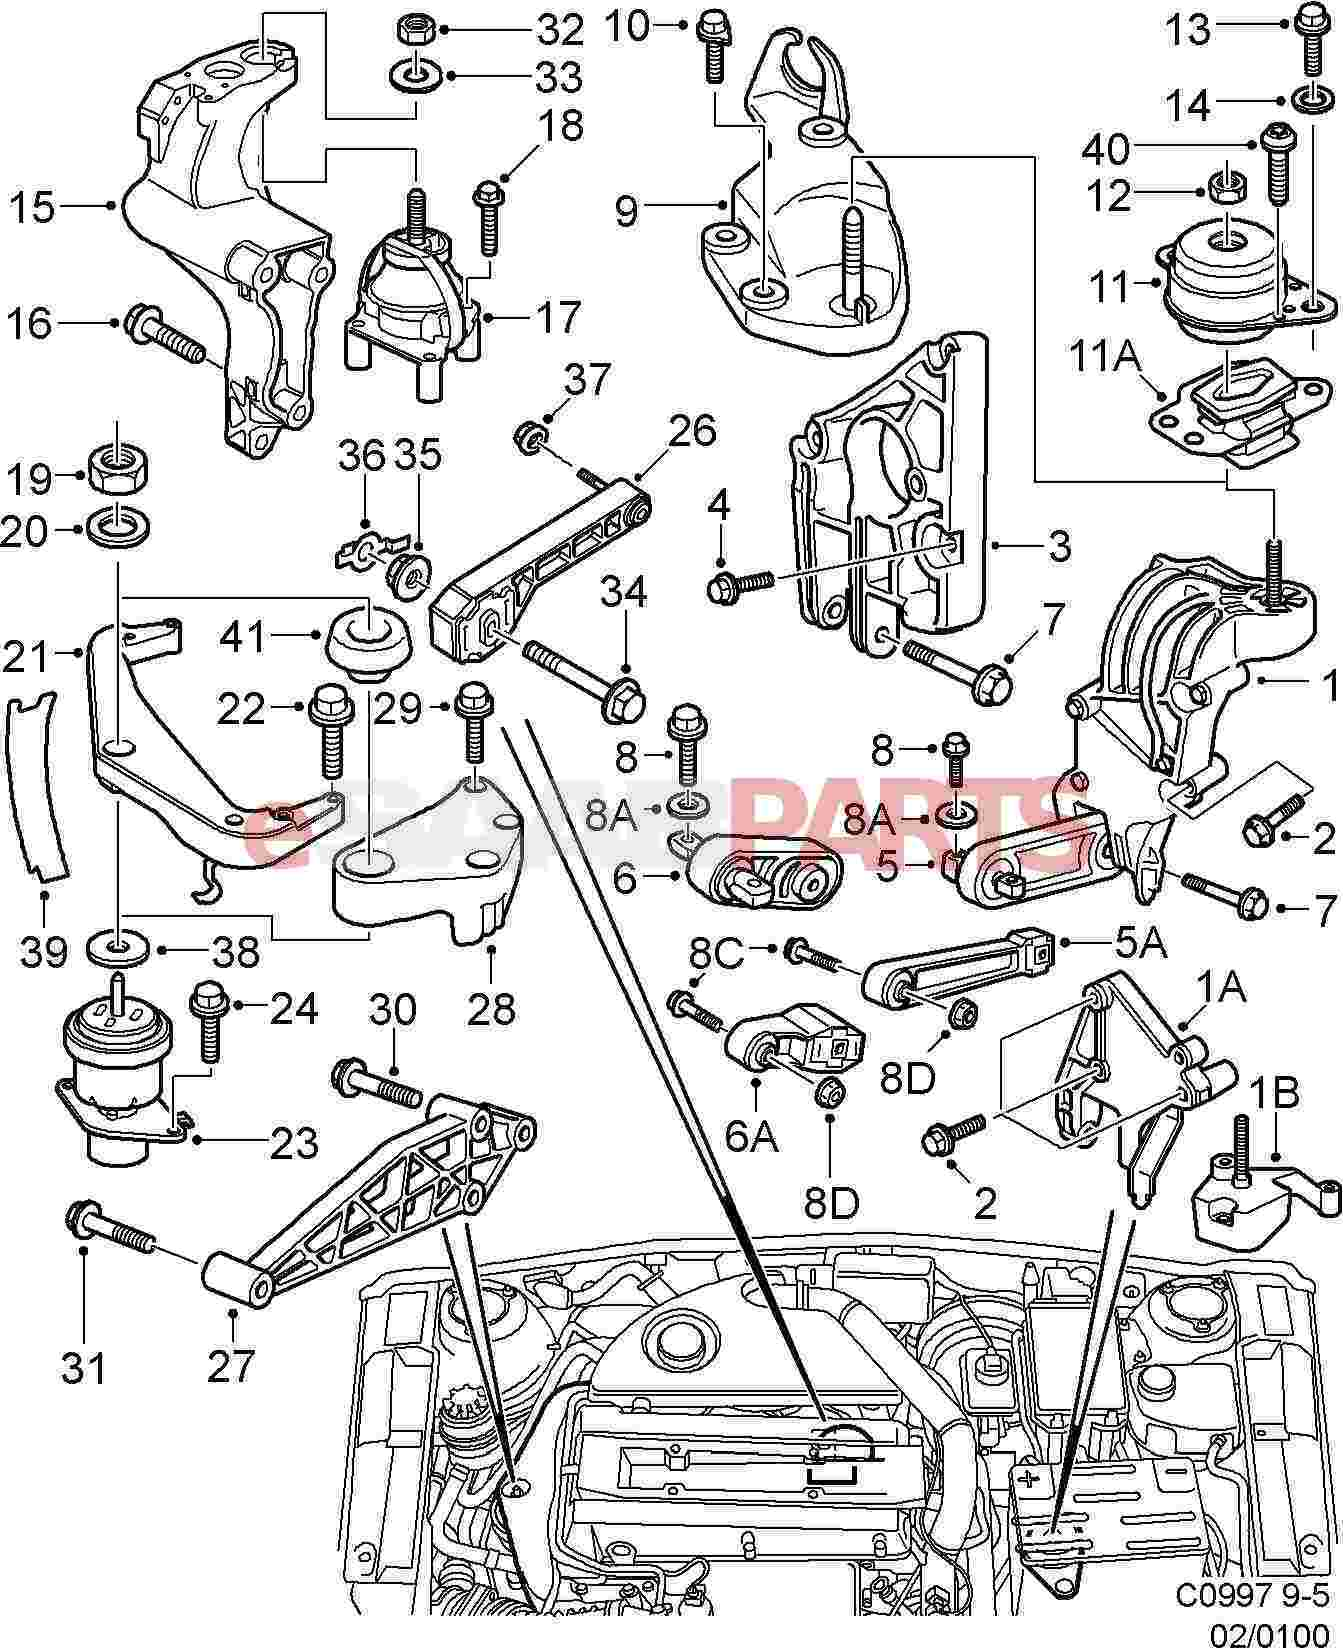 ... 2004 Chevy Suburban Transfer Case Diagram further Saab 9000 2 0 1998  Specs And Images together ...